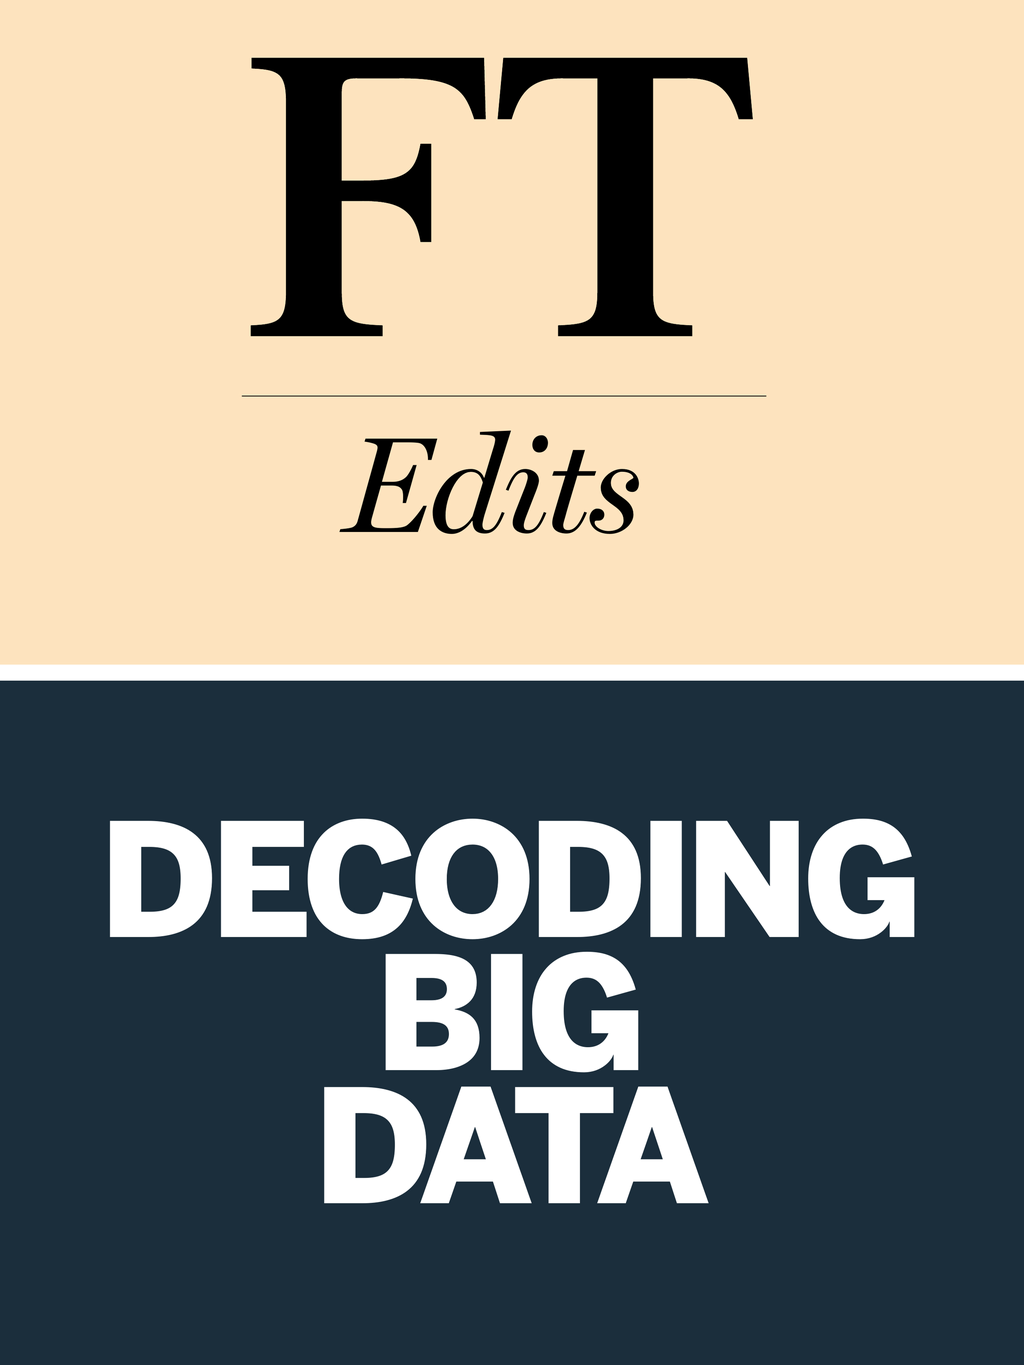 Decoding Big Data